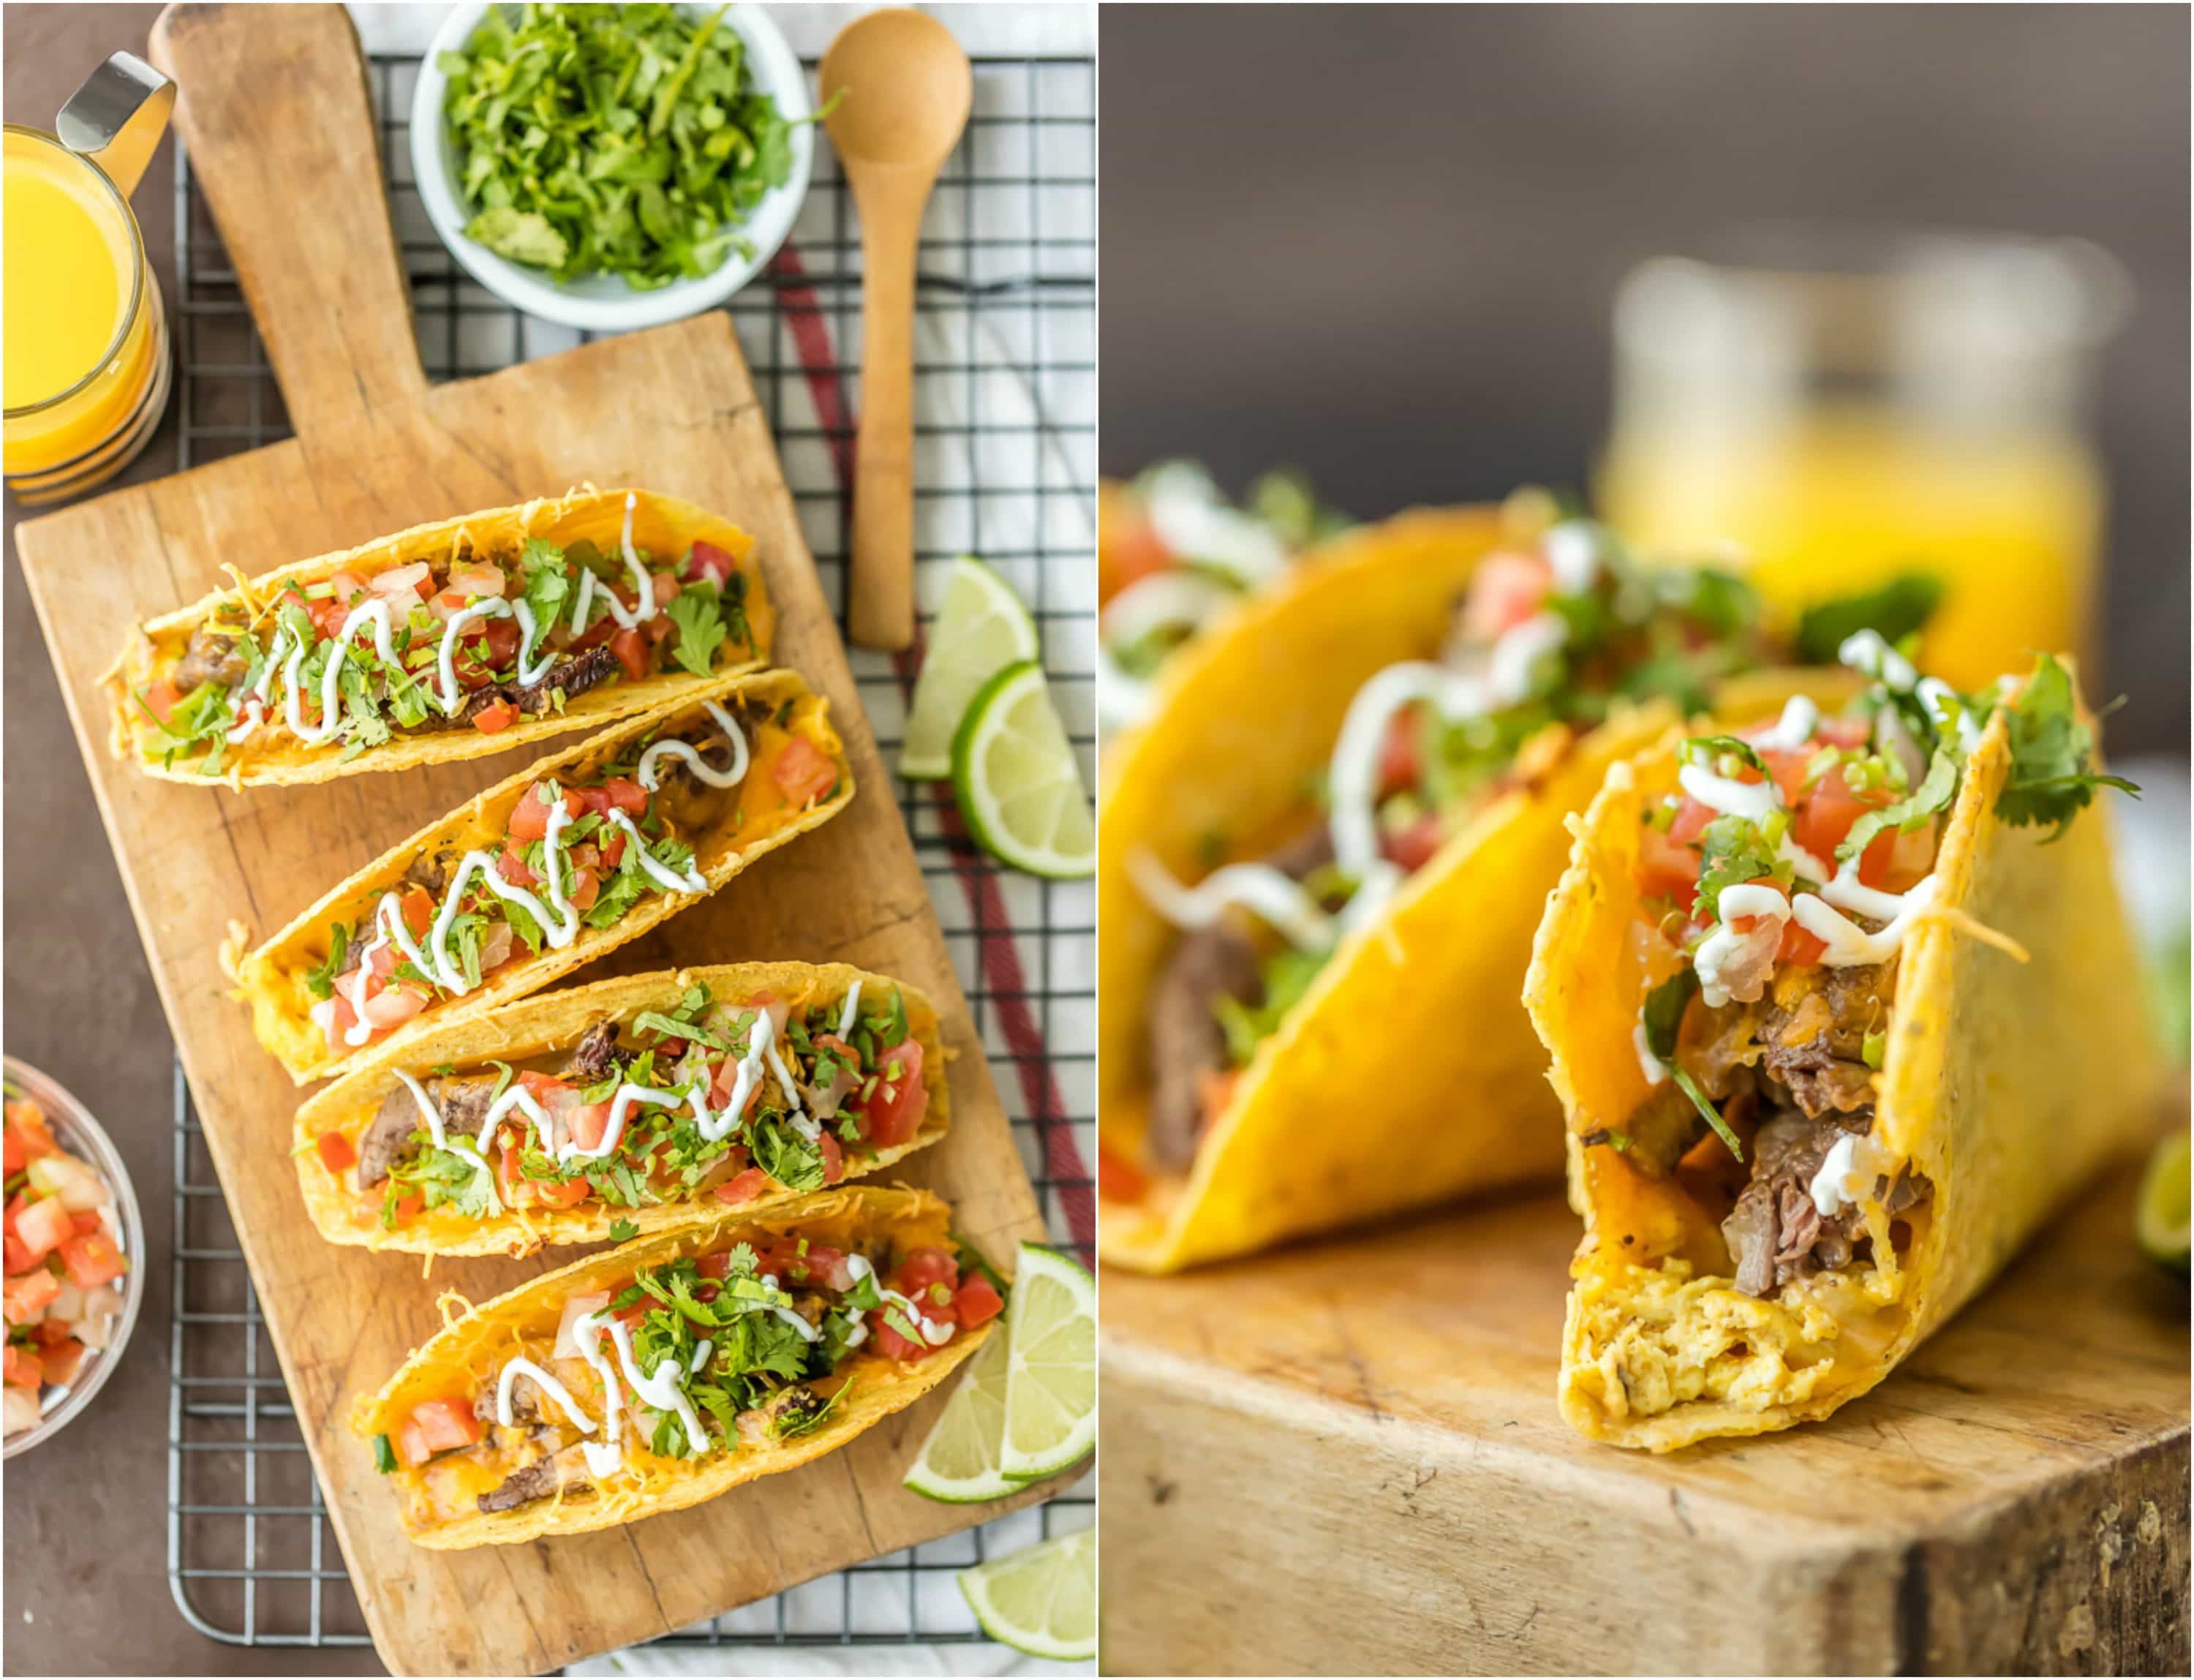 tacos filled with steak, eggs, and cheese